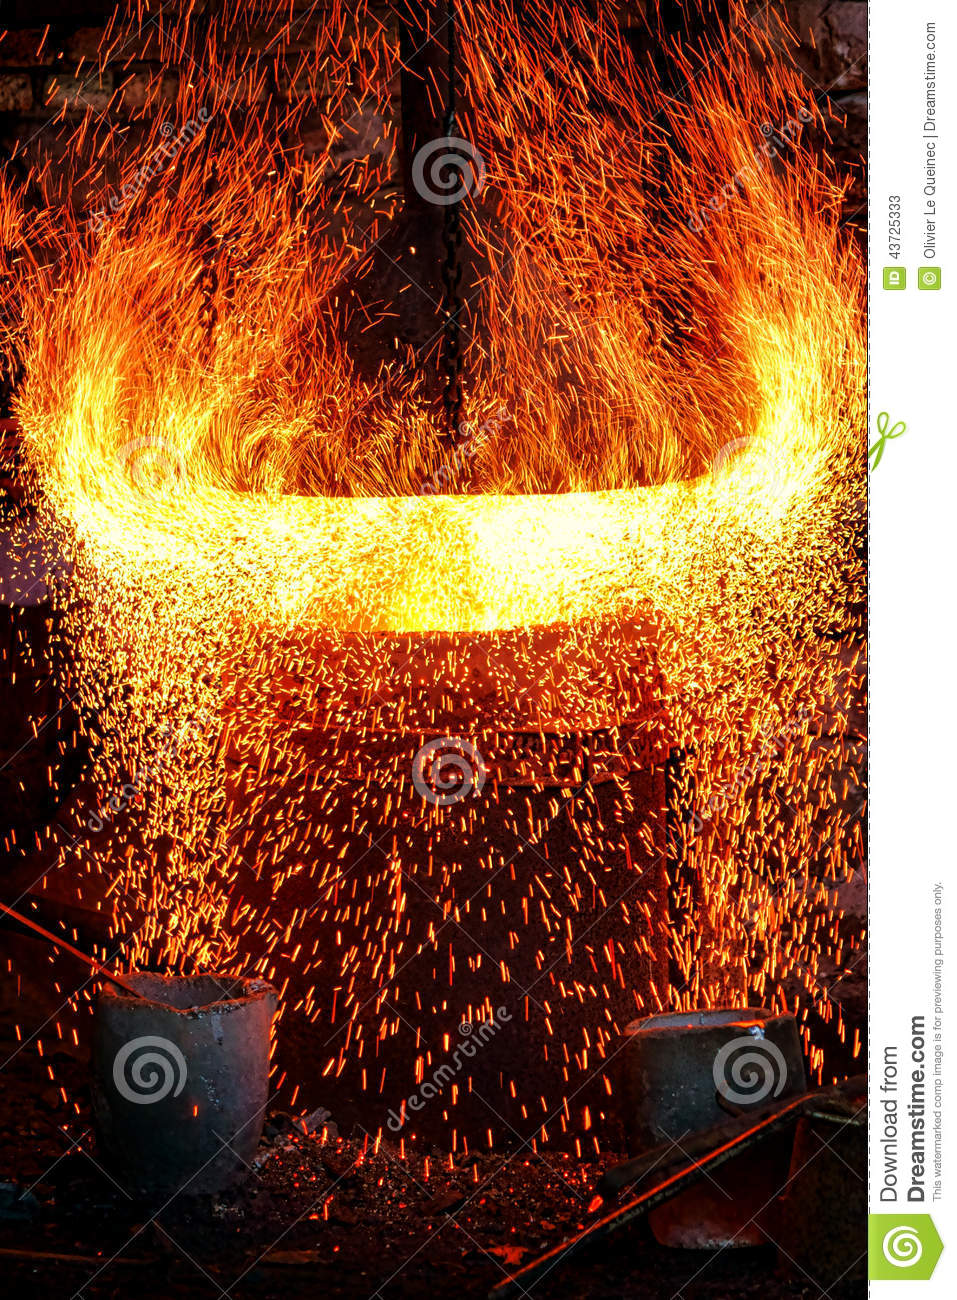 Fire Sparks And Blazing Flames In Blast Furnace Stock Photo Image 43725333